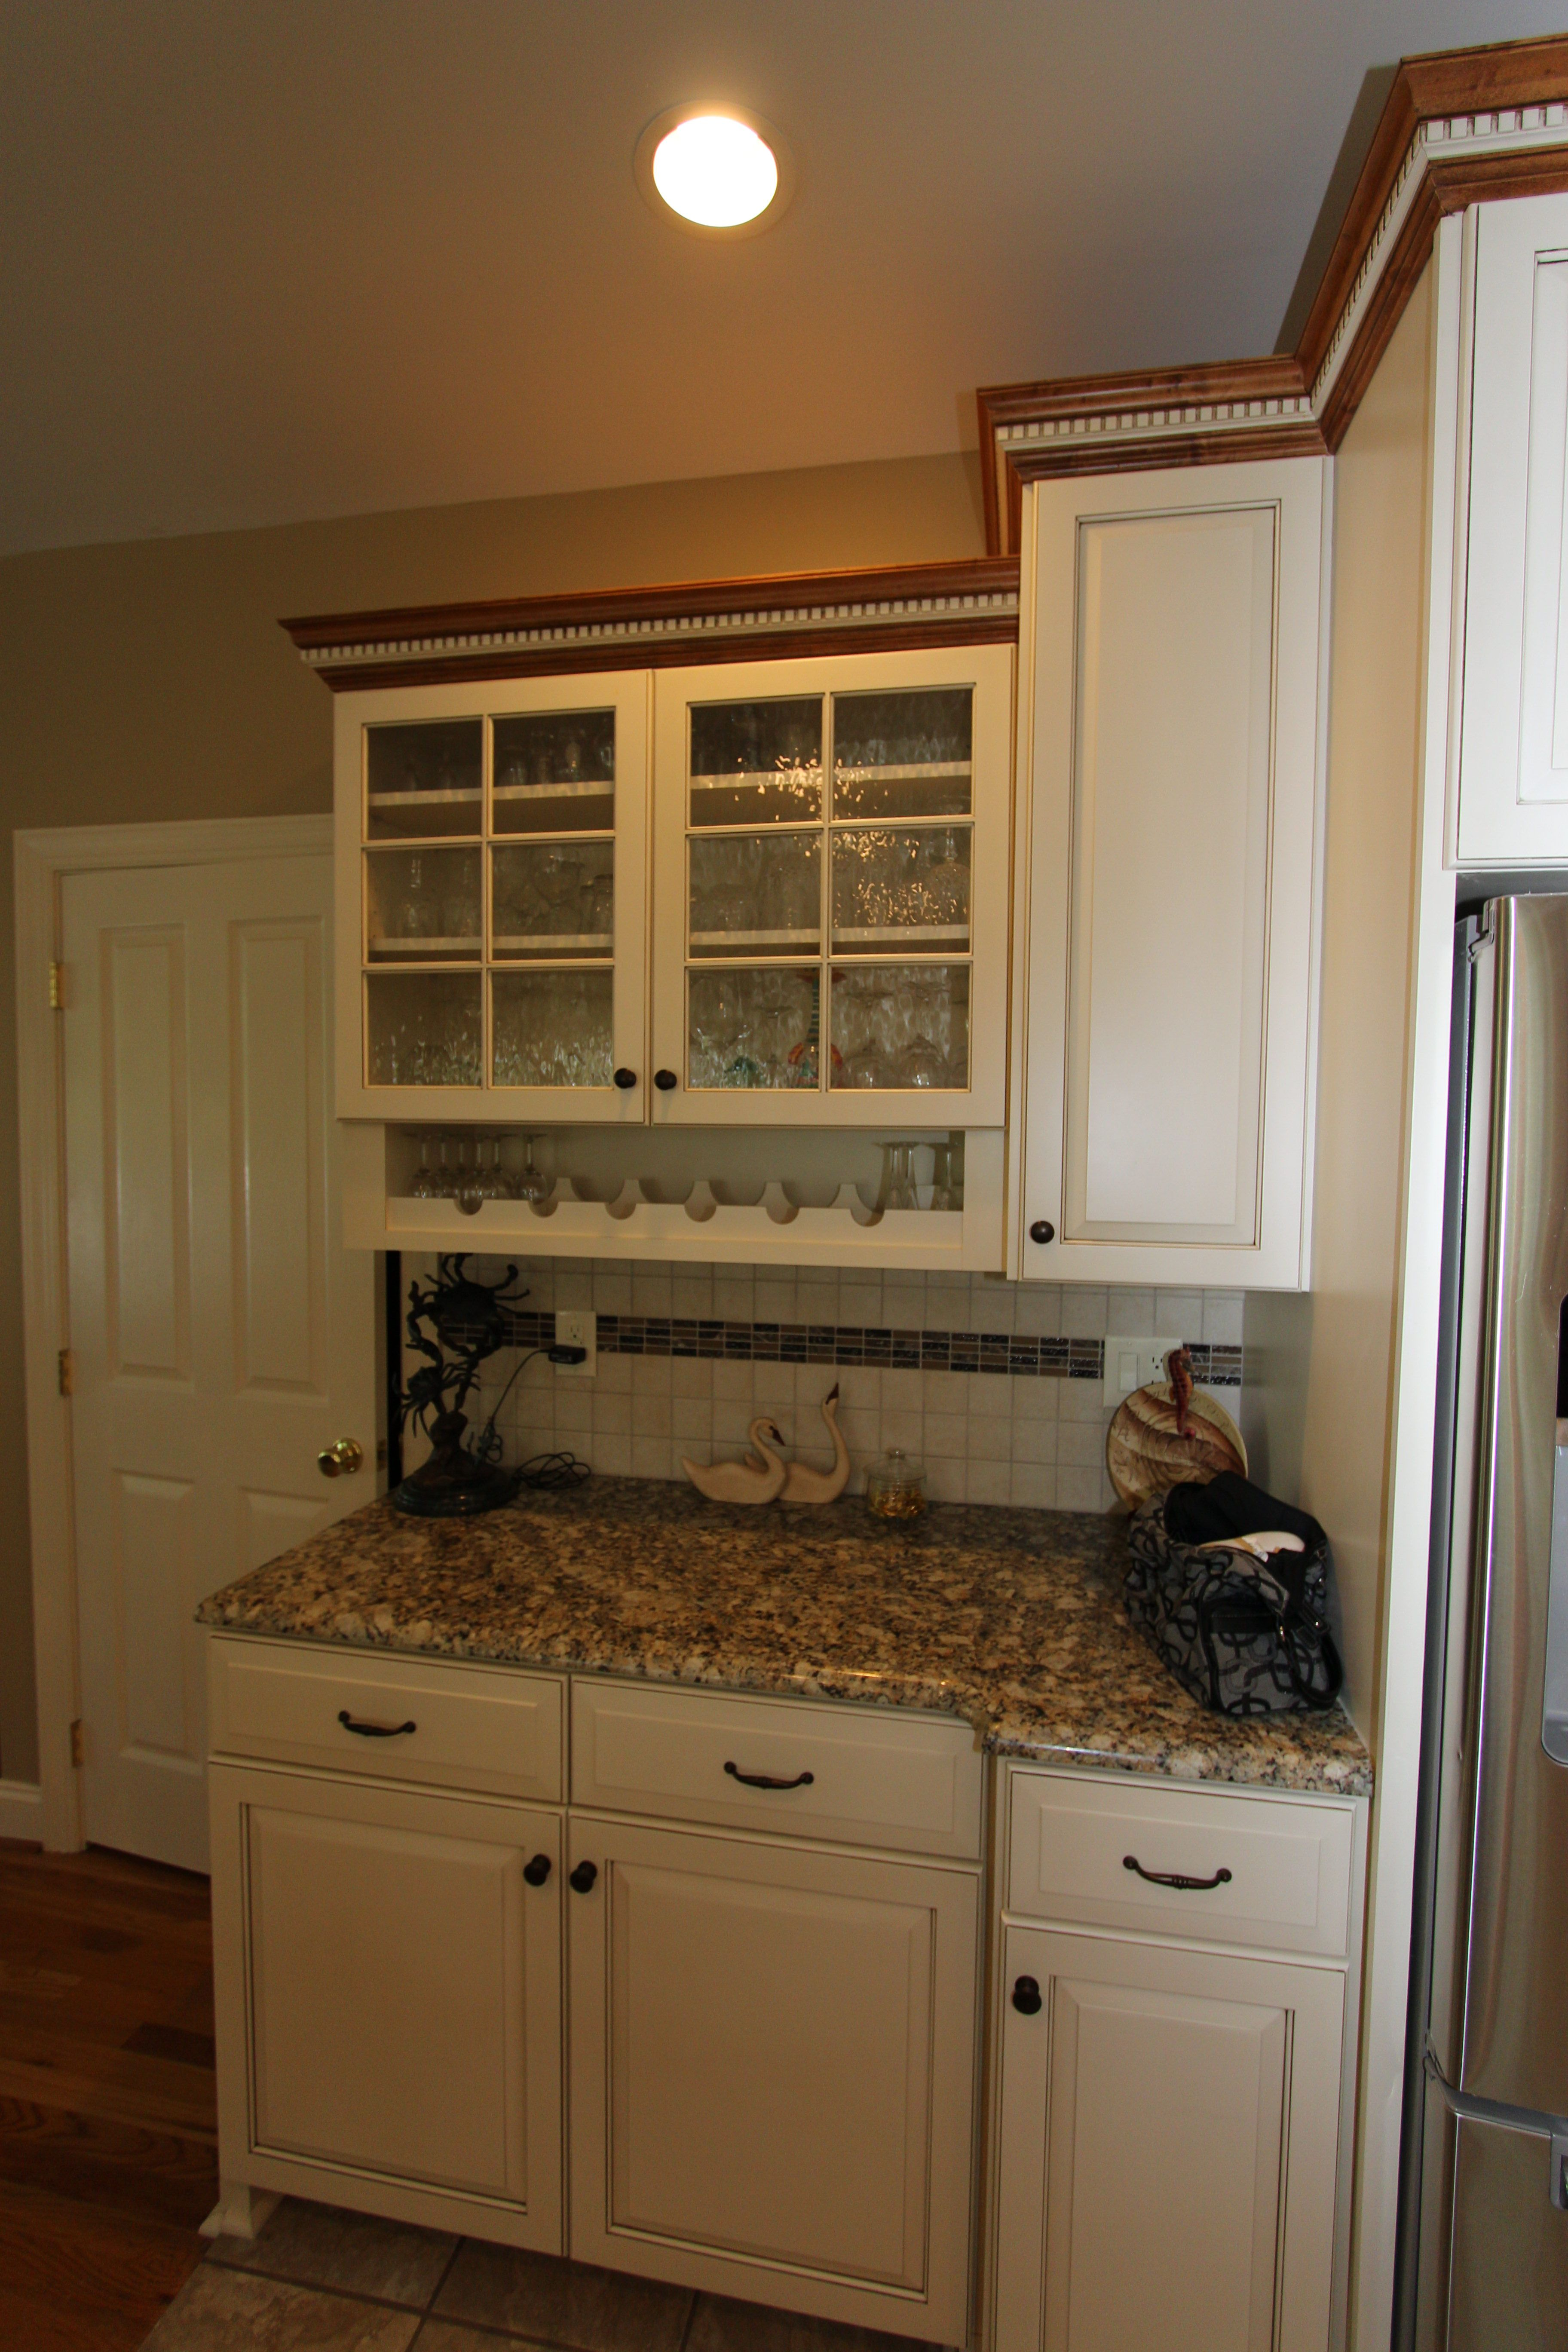 Home Page Kitchensaver Kitchen Design Decor Refacing Kitchen Cabinets Kitchen Cabinets